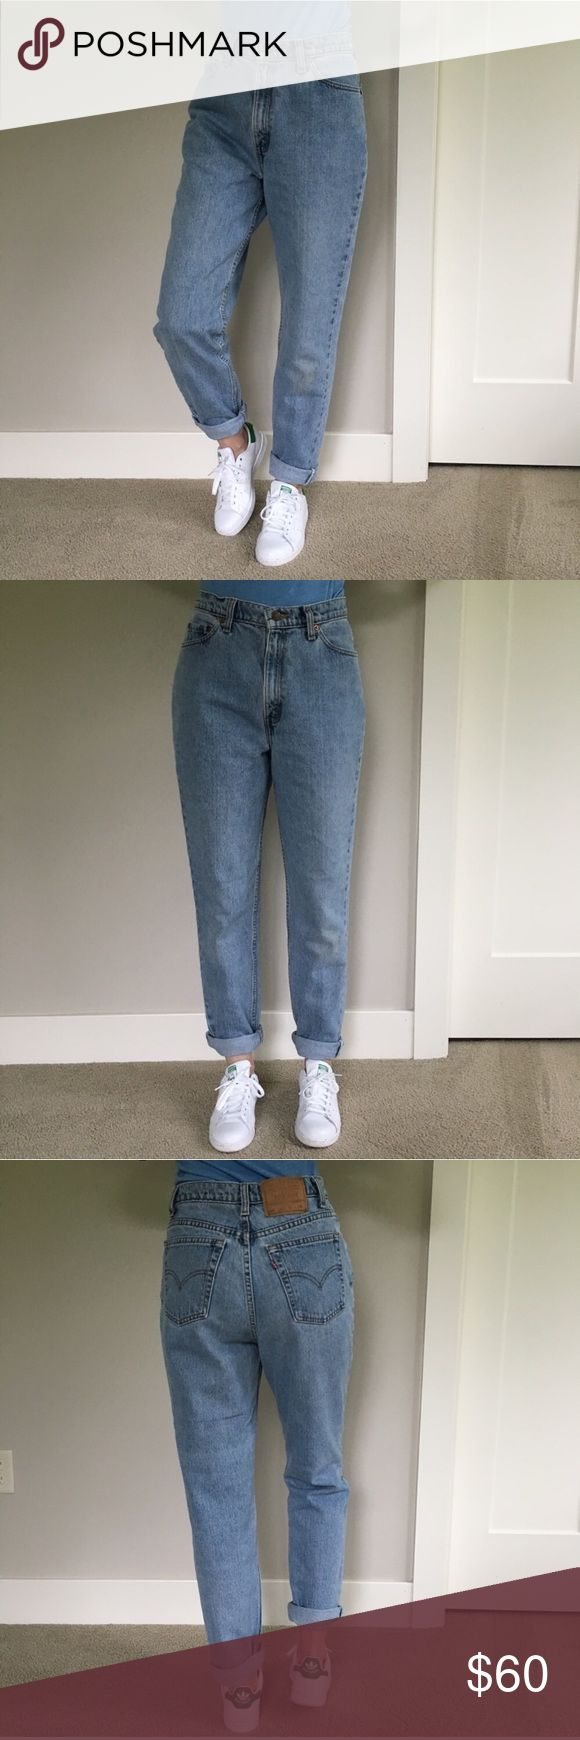 "Vintage Levi's 512 High Waisted Mom Jeans Tapered In good condition for their age, some minor marks on the knee area and some wear near the front pockets (see pictures). The flat waist measurement was used to convert these jeans to a modern size 28-29. Inseam is 30"". The model in the photos is a size 26-27 Levi's Jeans"